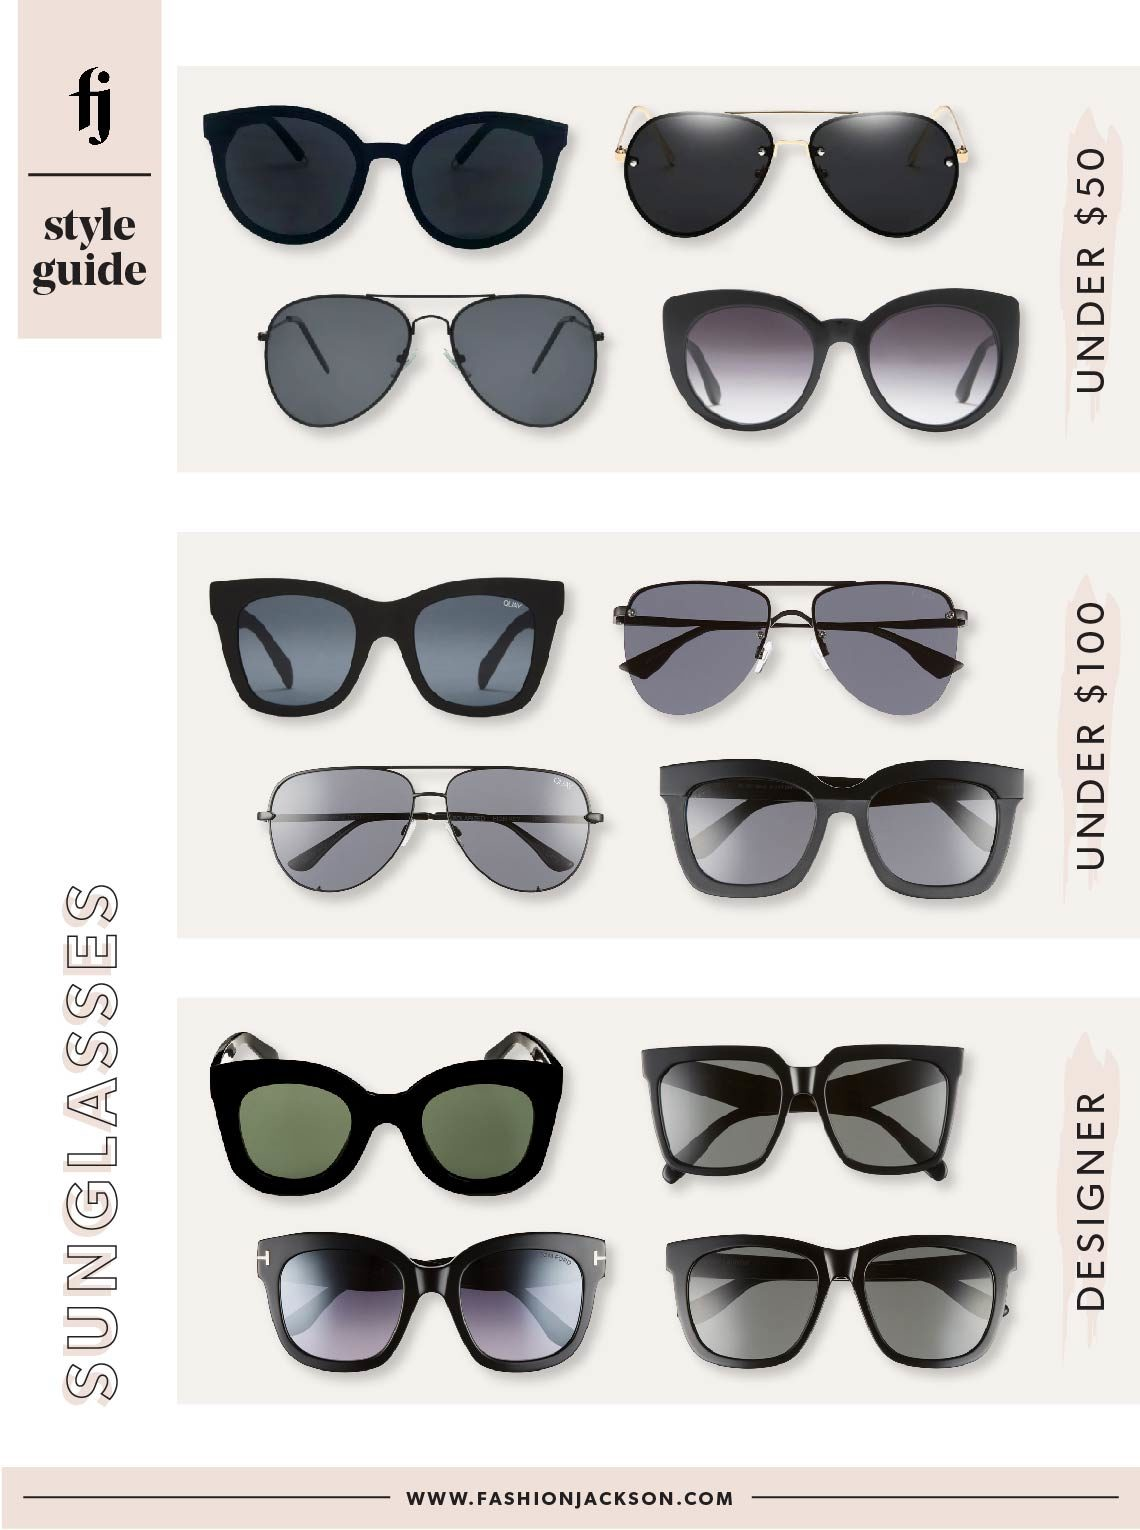 Fashion Jackson Black Sunglasses Guide